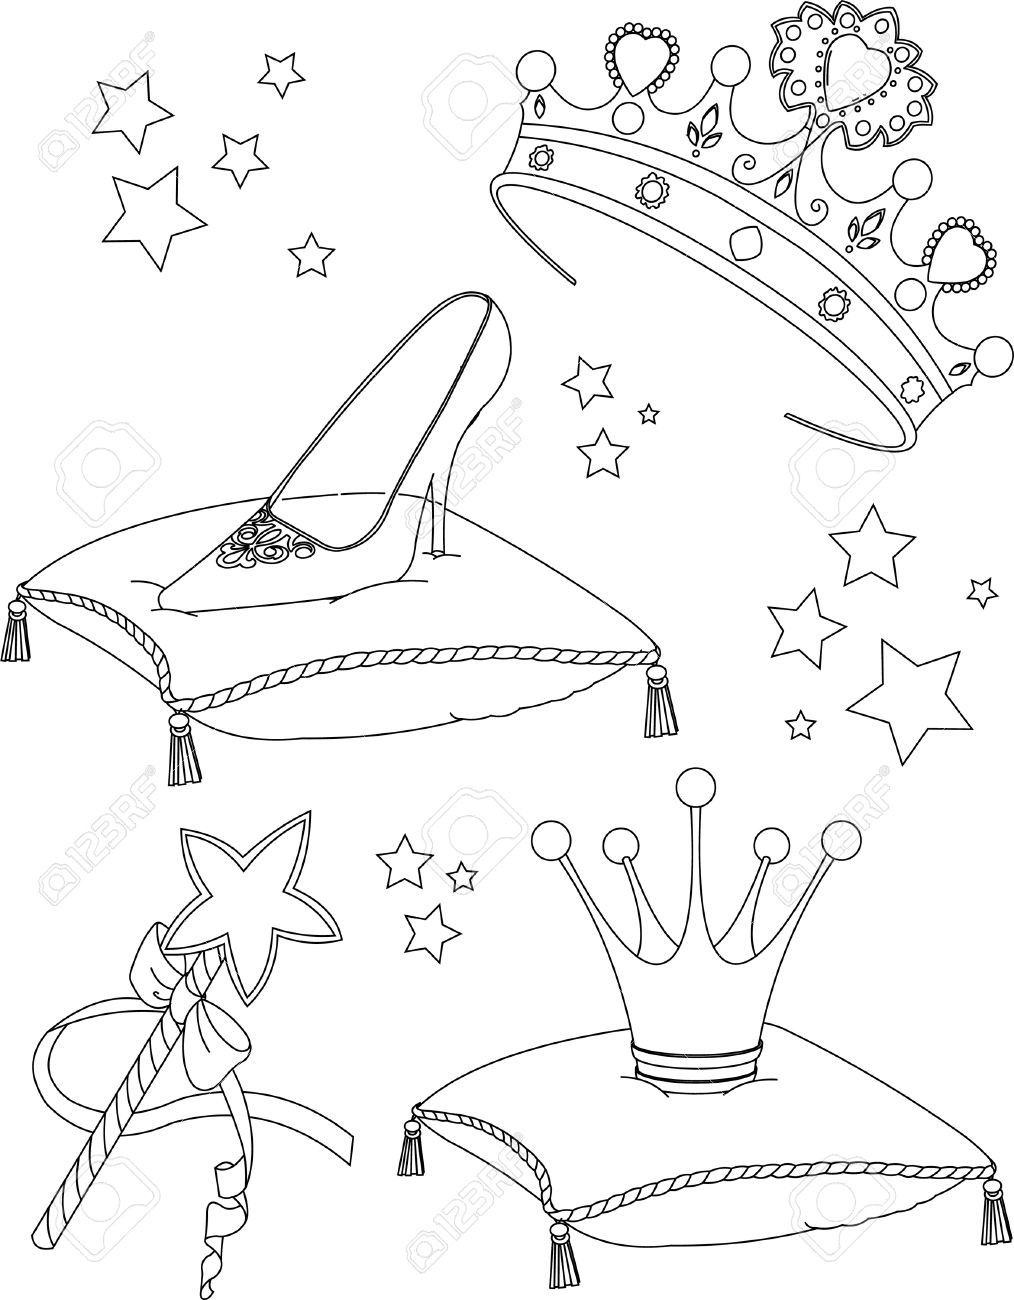 Princess Wand Coloring Page Through The Thousands Of Images On The Net Concerning Princess Wand Col Coloring Pages Cartoon Coloring Pages Cute Coloring Pages